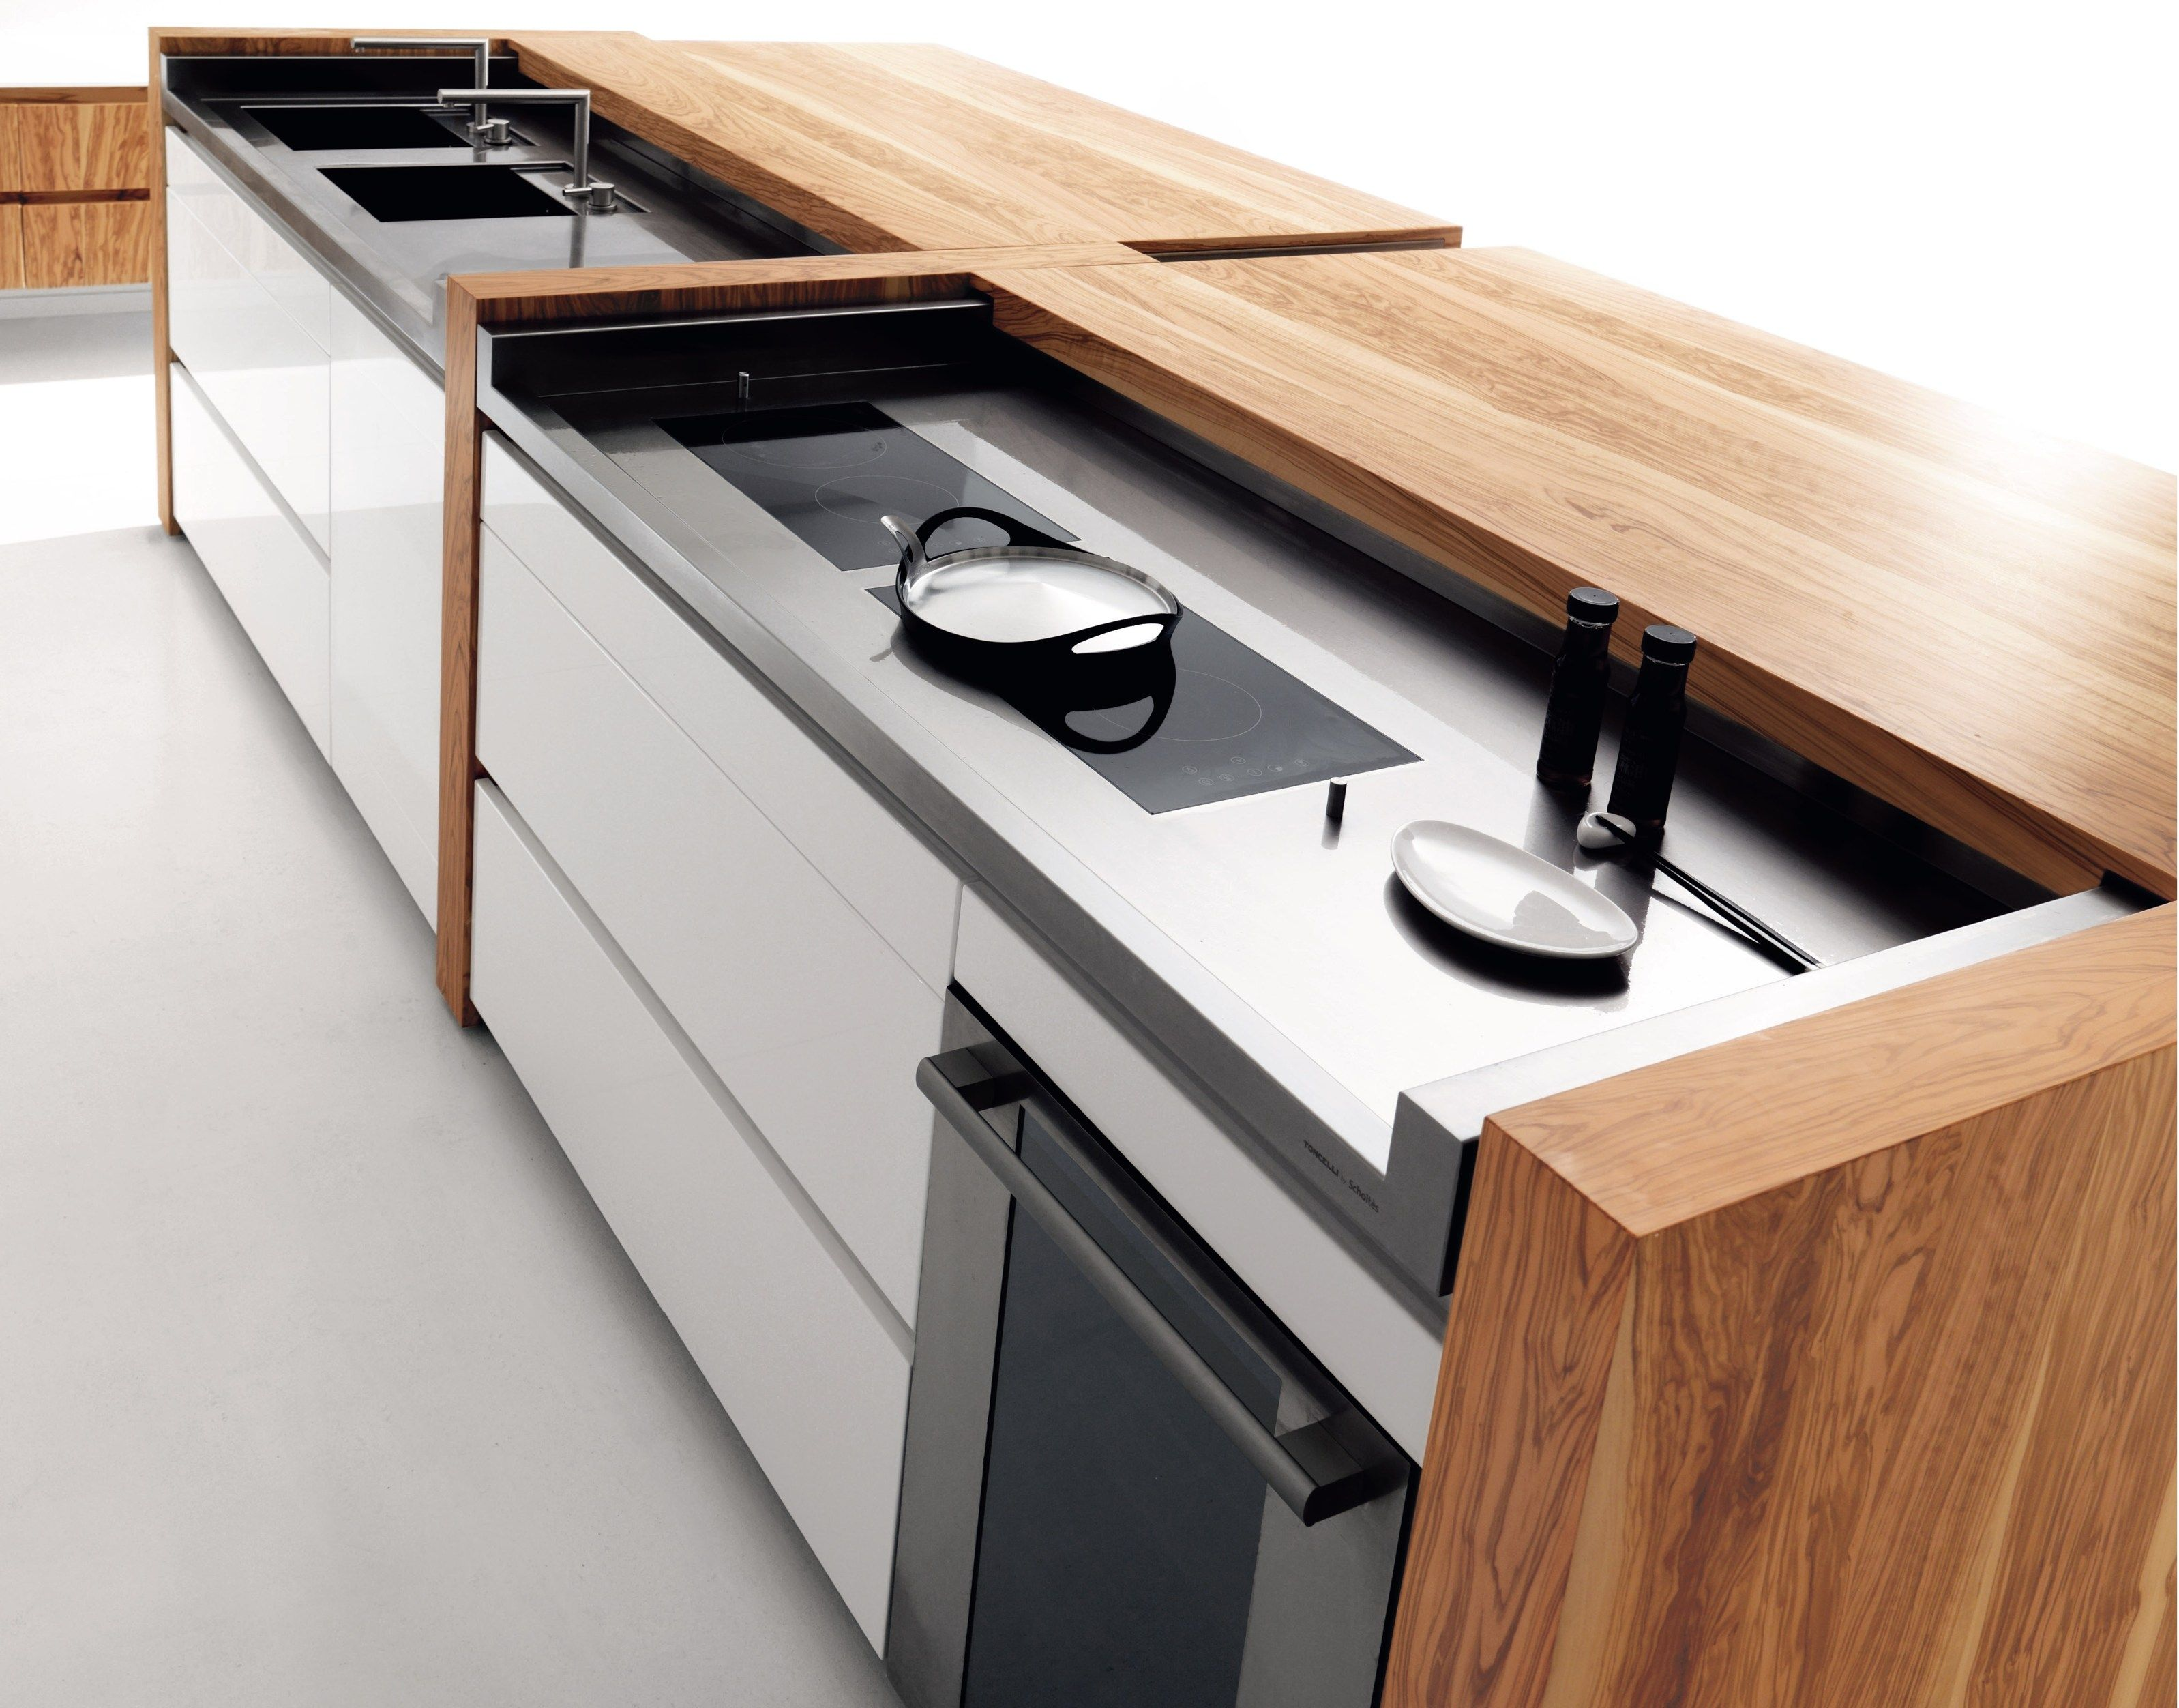 Captivant Olive Wood Kitchen With Island ESSENTIAL WOOD Essential Collection By  TONCELLI CUCINE | Kitchen | Кухня, Мебель и Дом